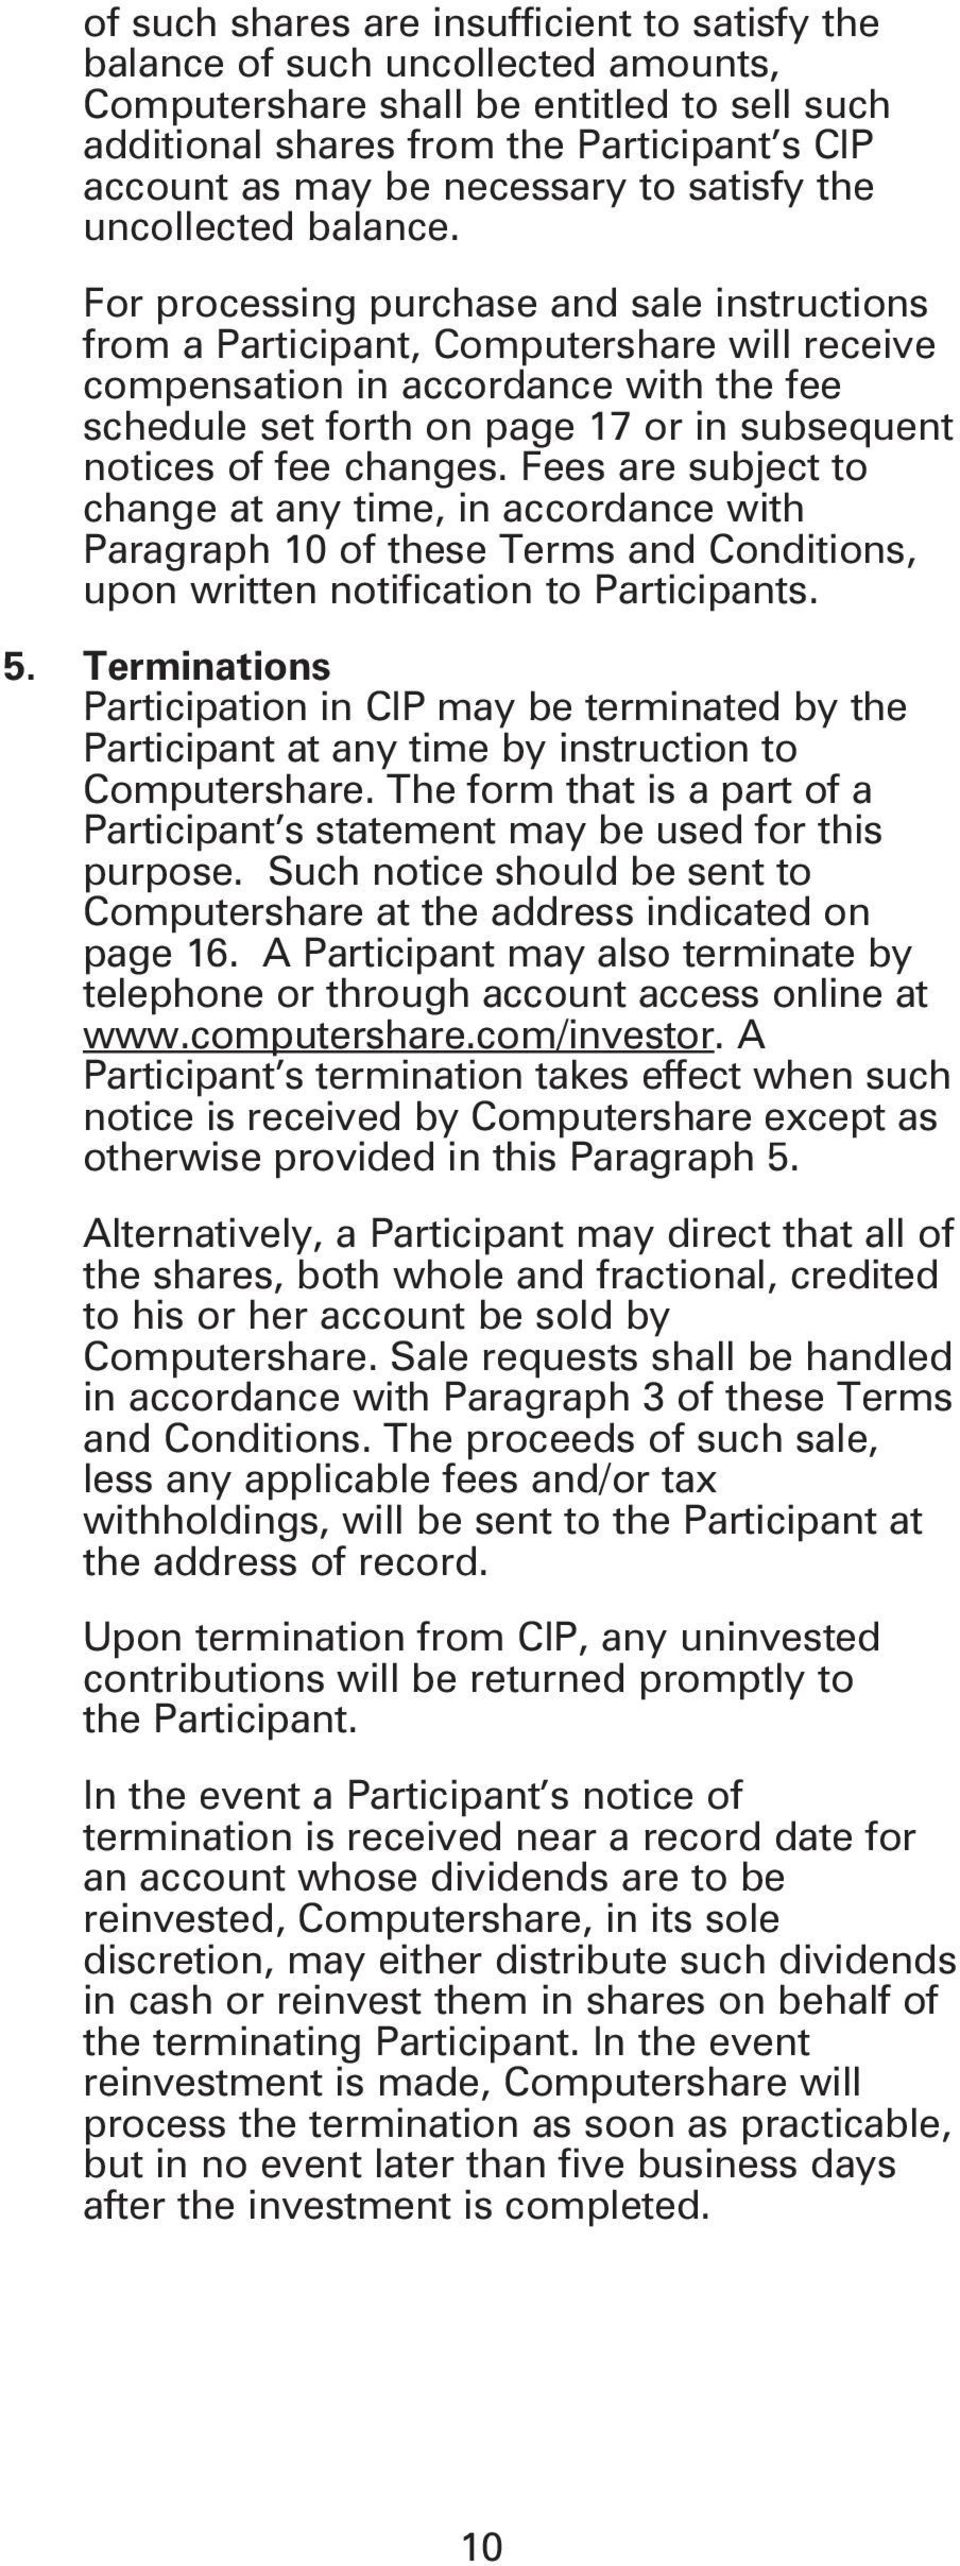 For processing purchase and sale instructions from a Participant, Computershare will receive compensation in accordance with the fee schedule set forth on page 17 or in subsequent notices of fee